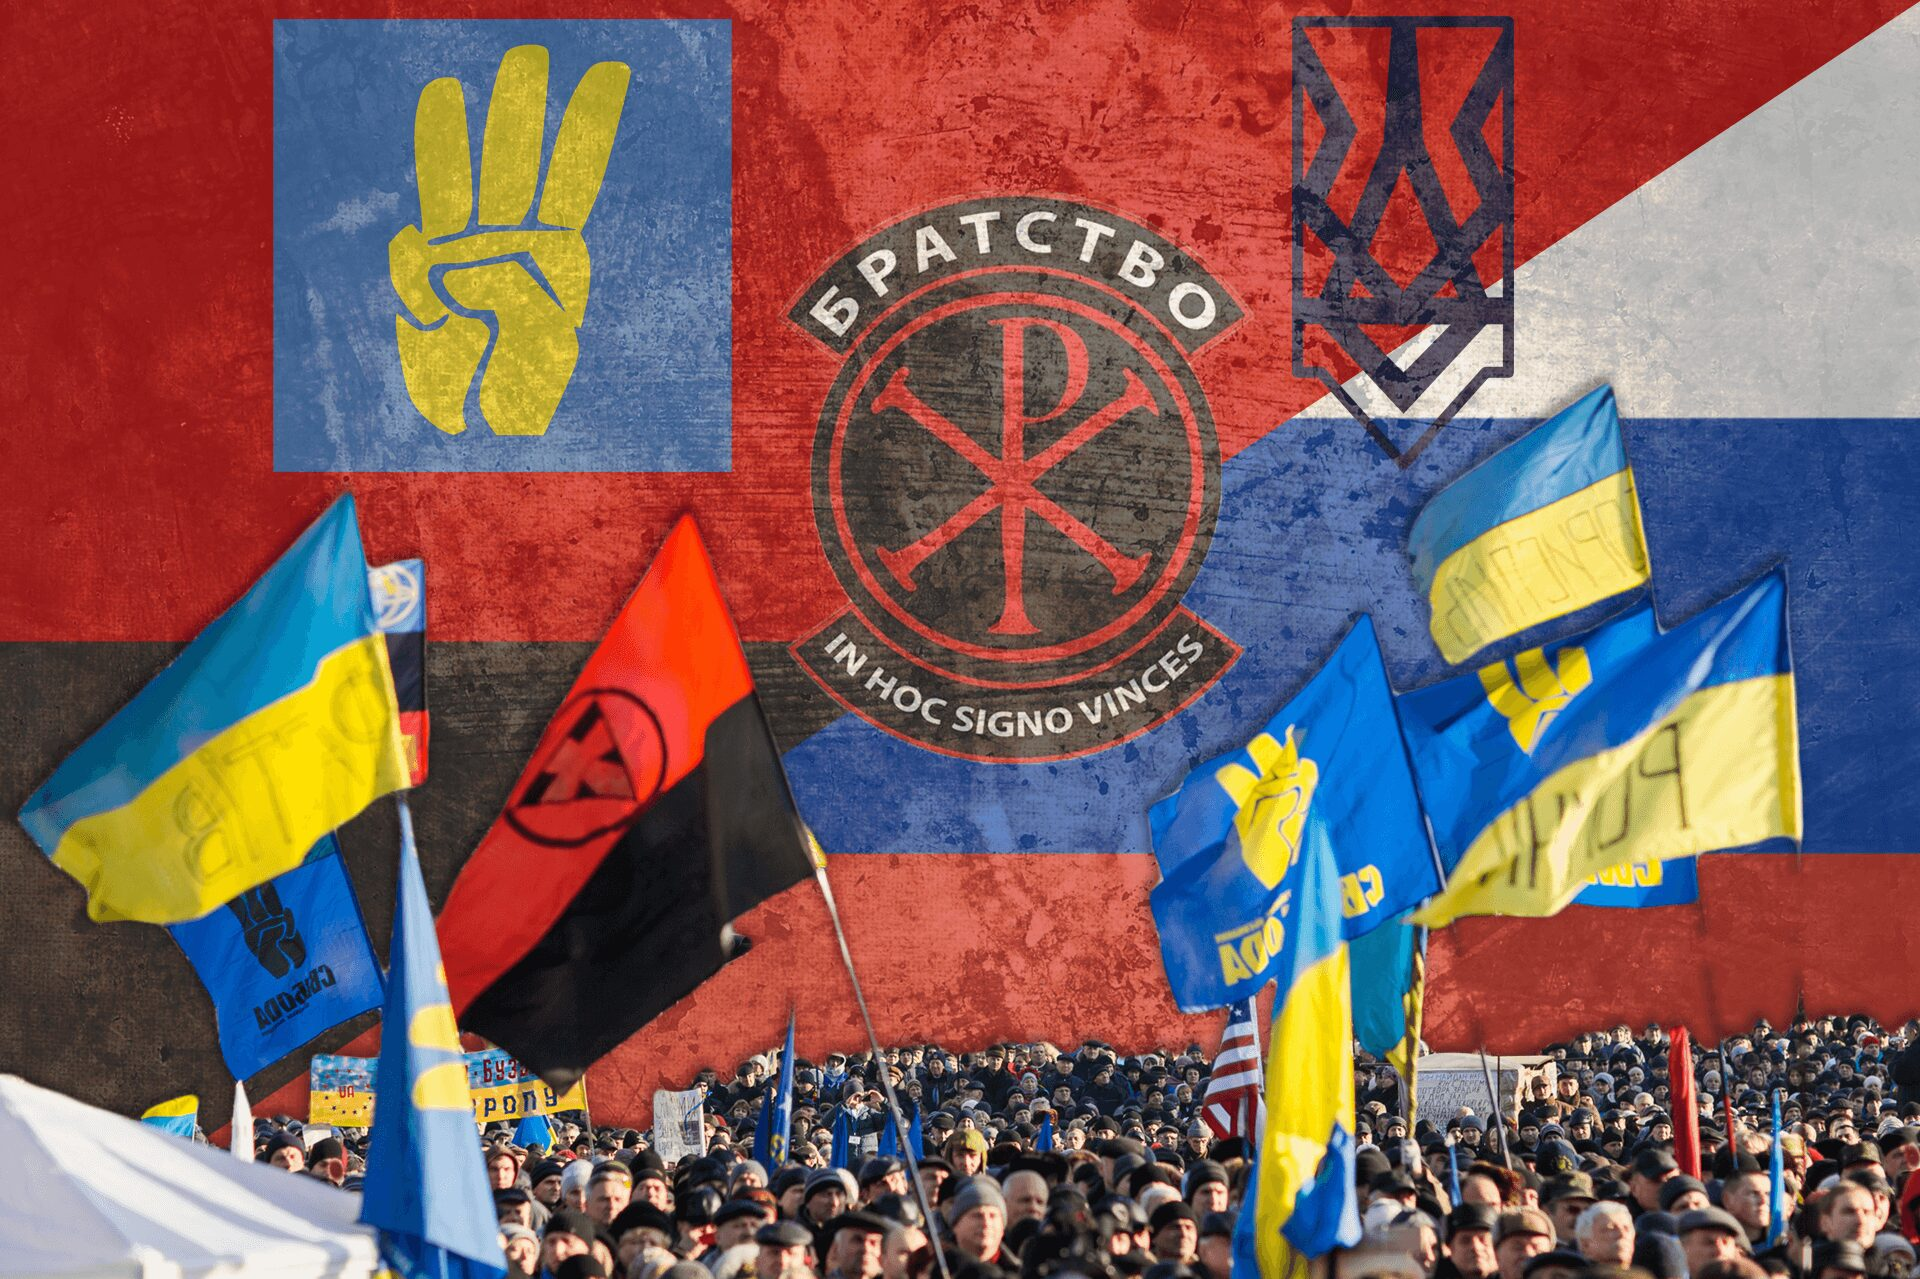 Unexpected Friendships: Cooperation of Ukrainian Ultra-Nationalists with Russian and Pro-Kremlin Actors